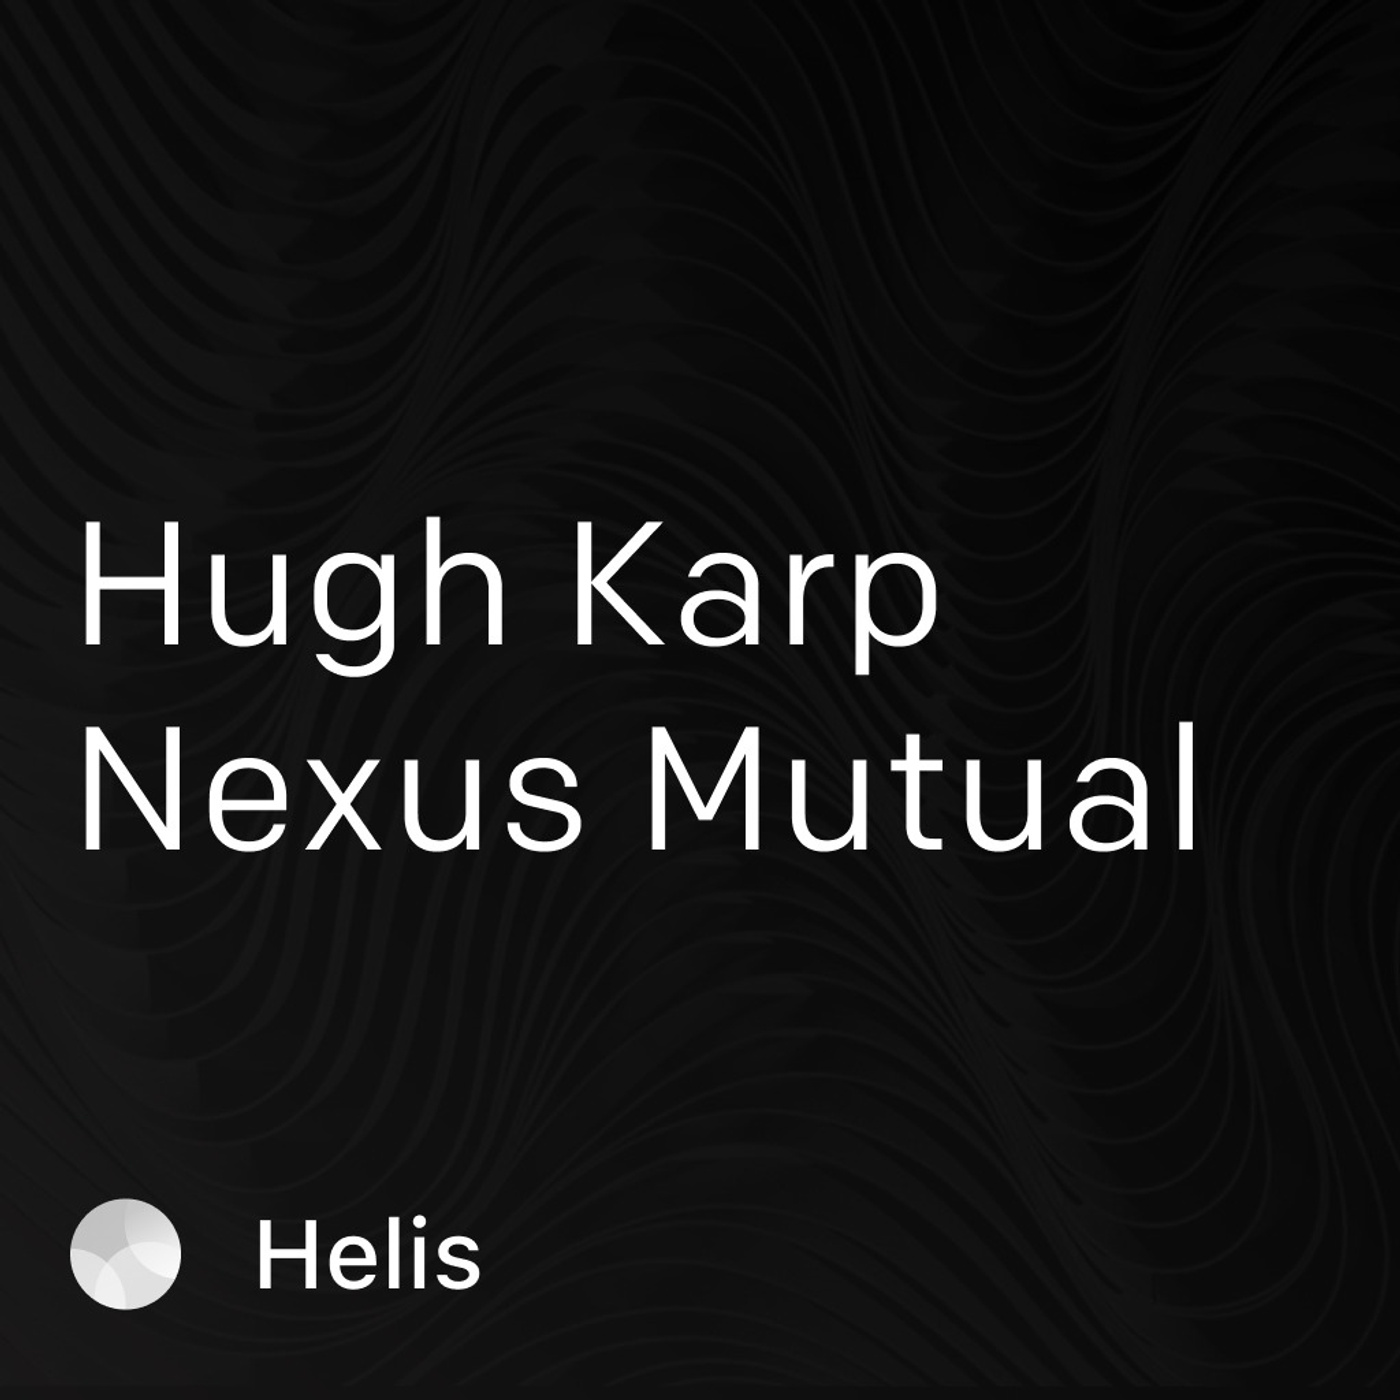 Smart Contract Insurance: What is it? Featuring Hugh Karp from Nexus Mututal.